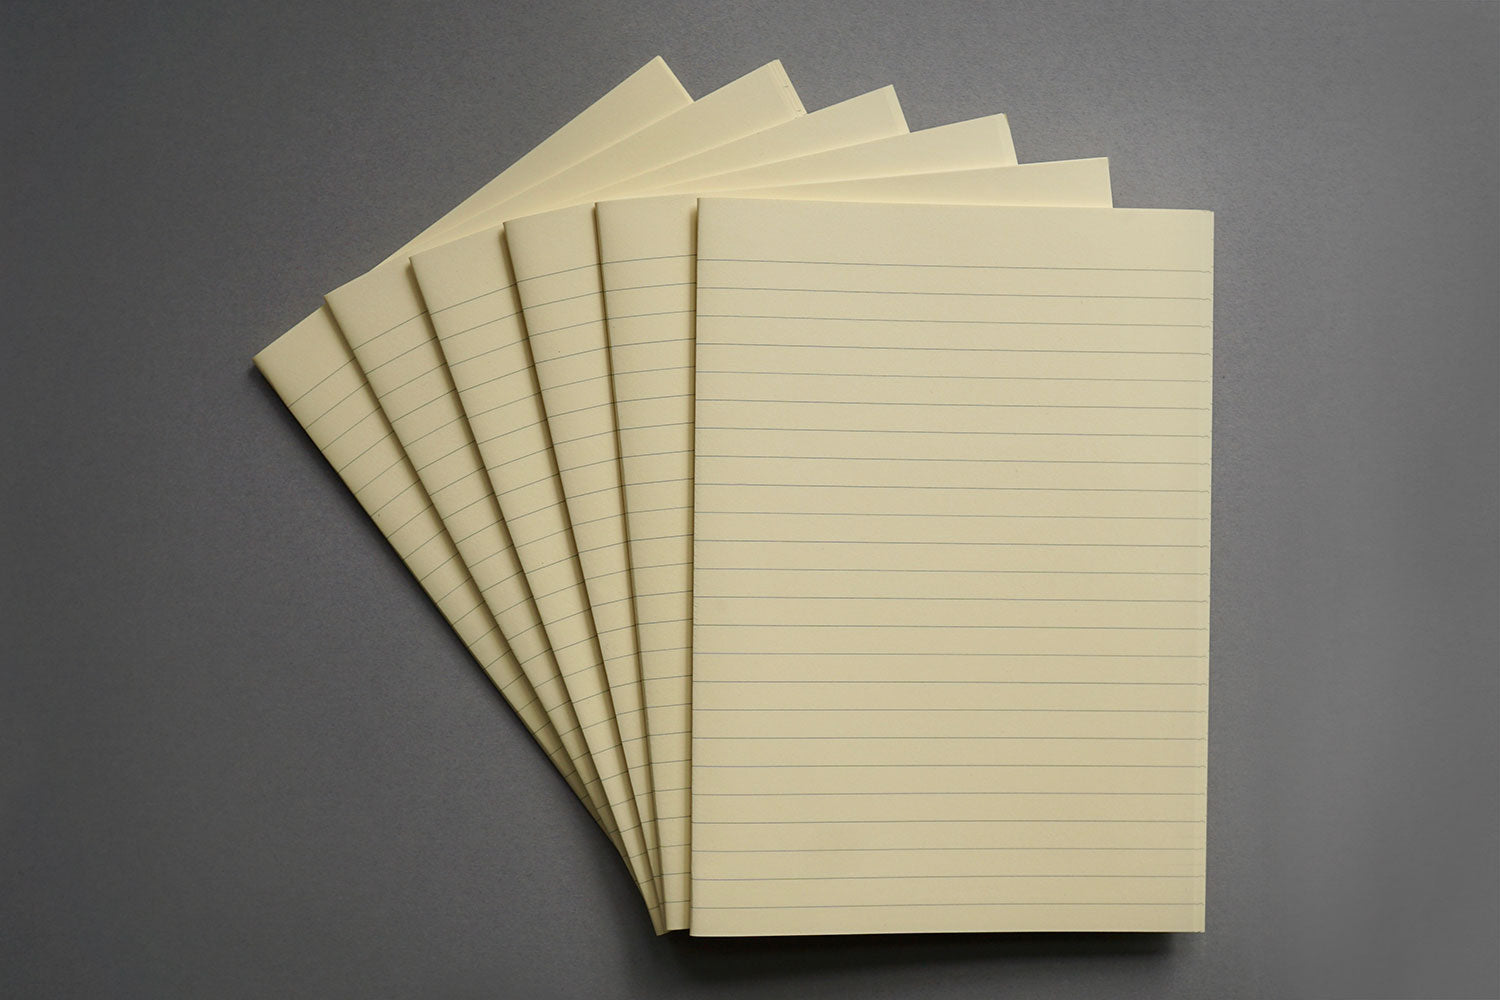 Bookbinding paper from Bookshell bindery, cream with lined pages